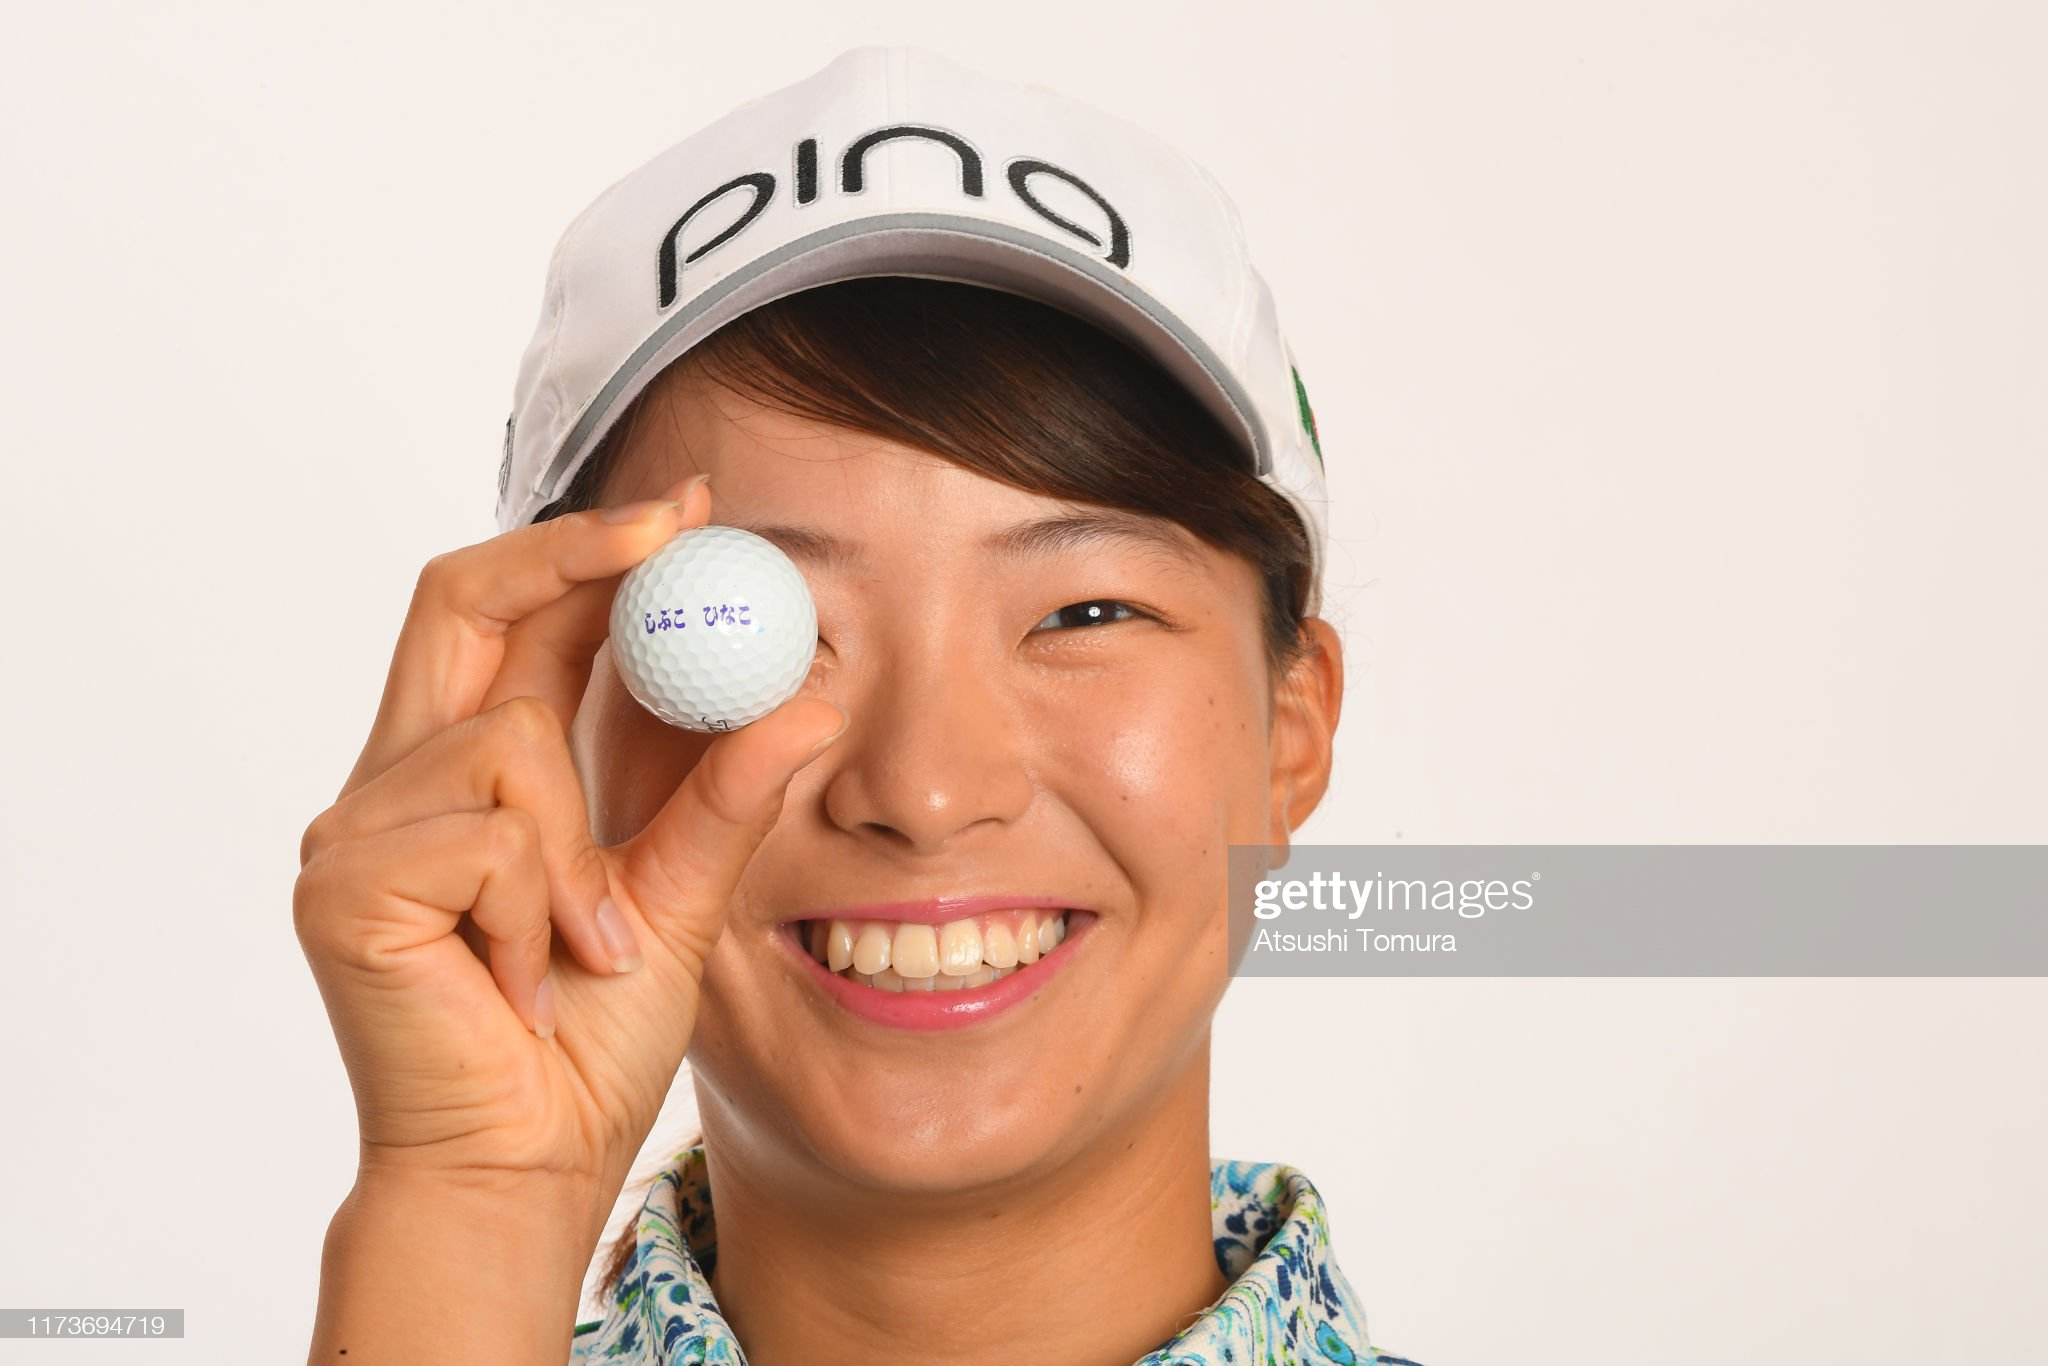 https://media.gettyimages.com/photos/hinako-shibuno-of-japan-poses-during-the-japanese-lpga-portrait-at-picture-id1173694719?s=2048x2048